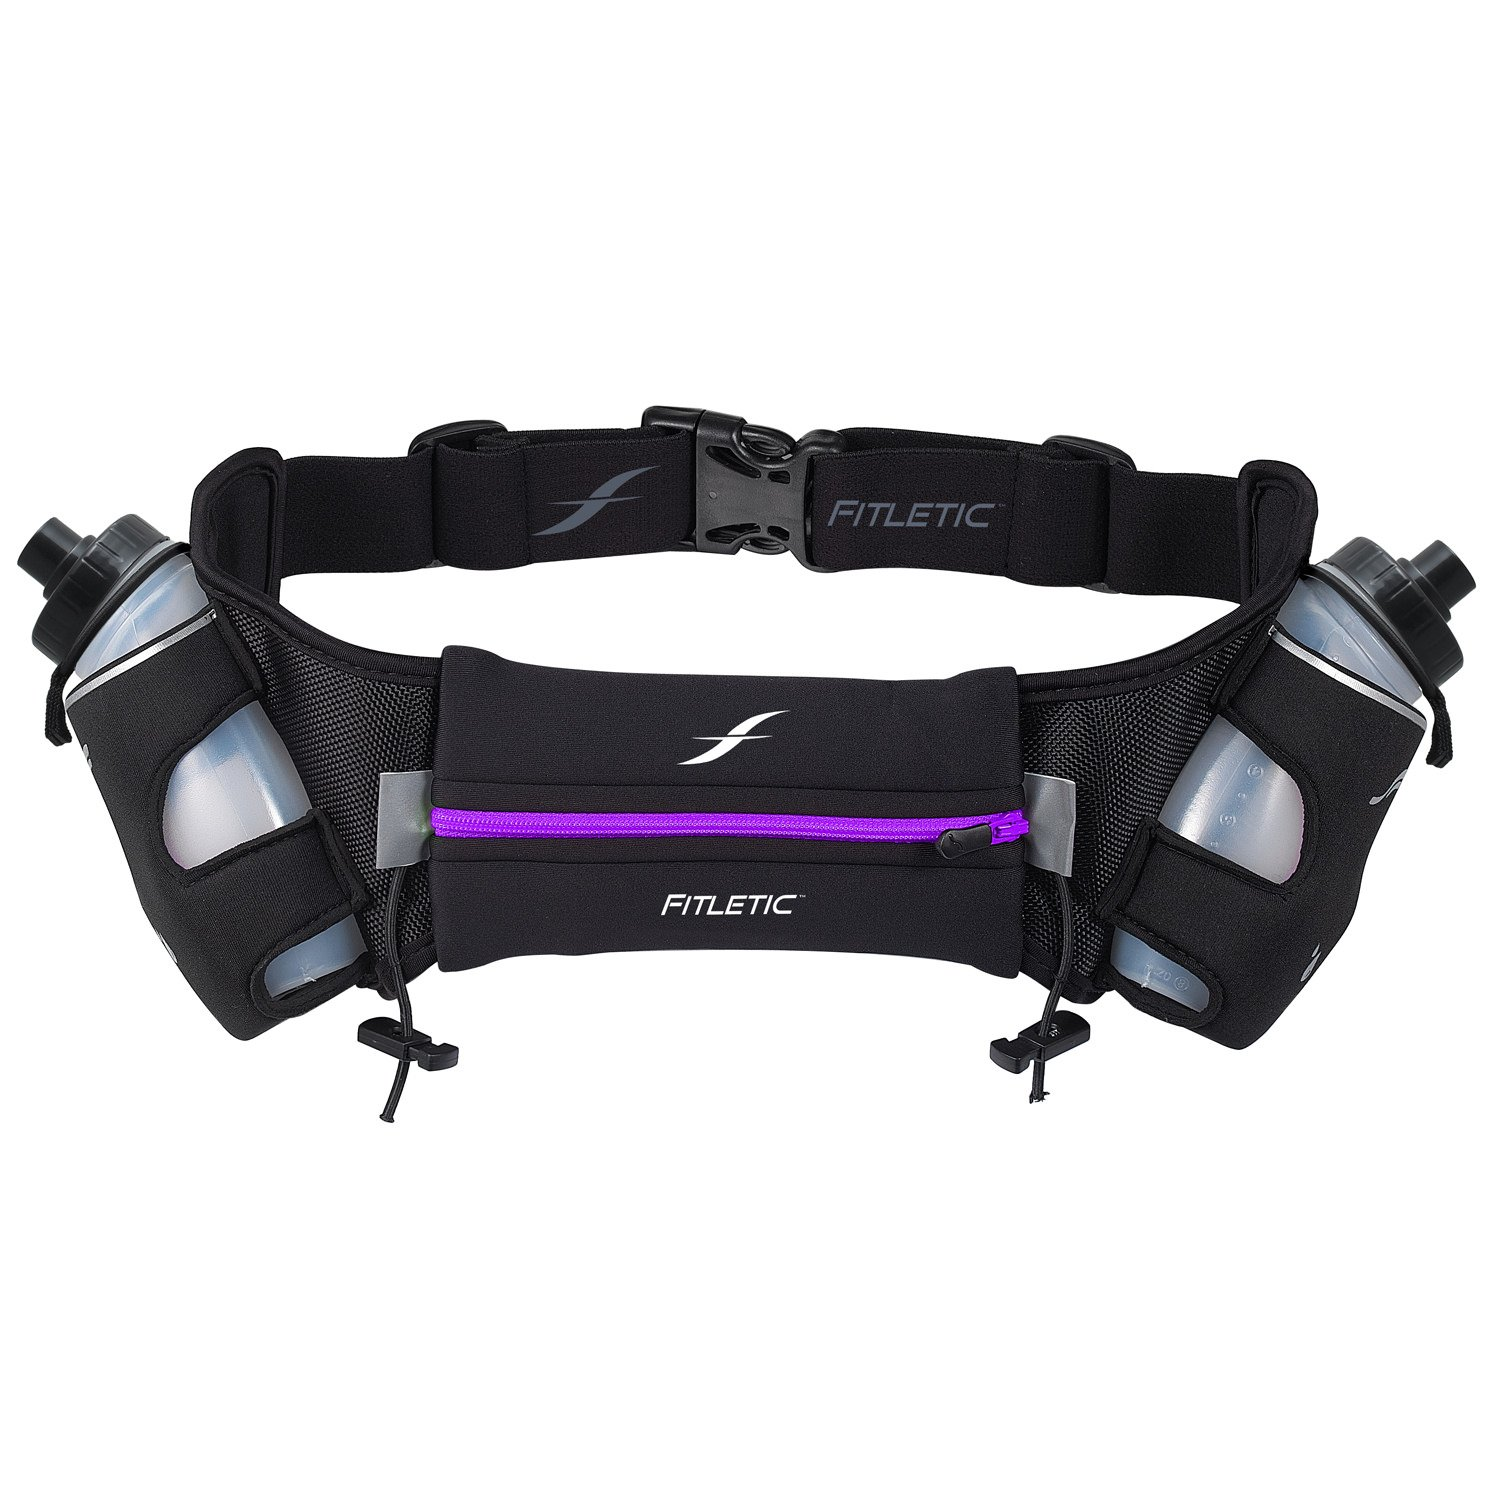 Fitletic  12 Oz Hydration Belt, Black/Purple, Large/X-Large